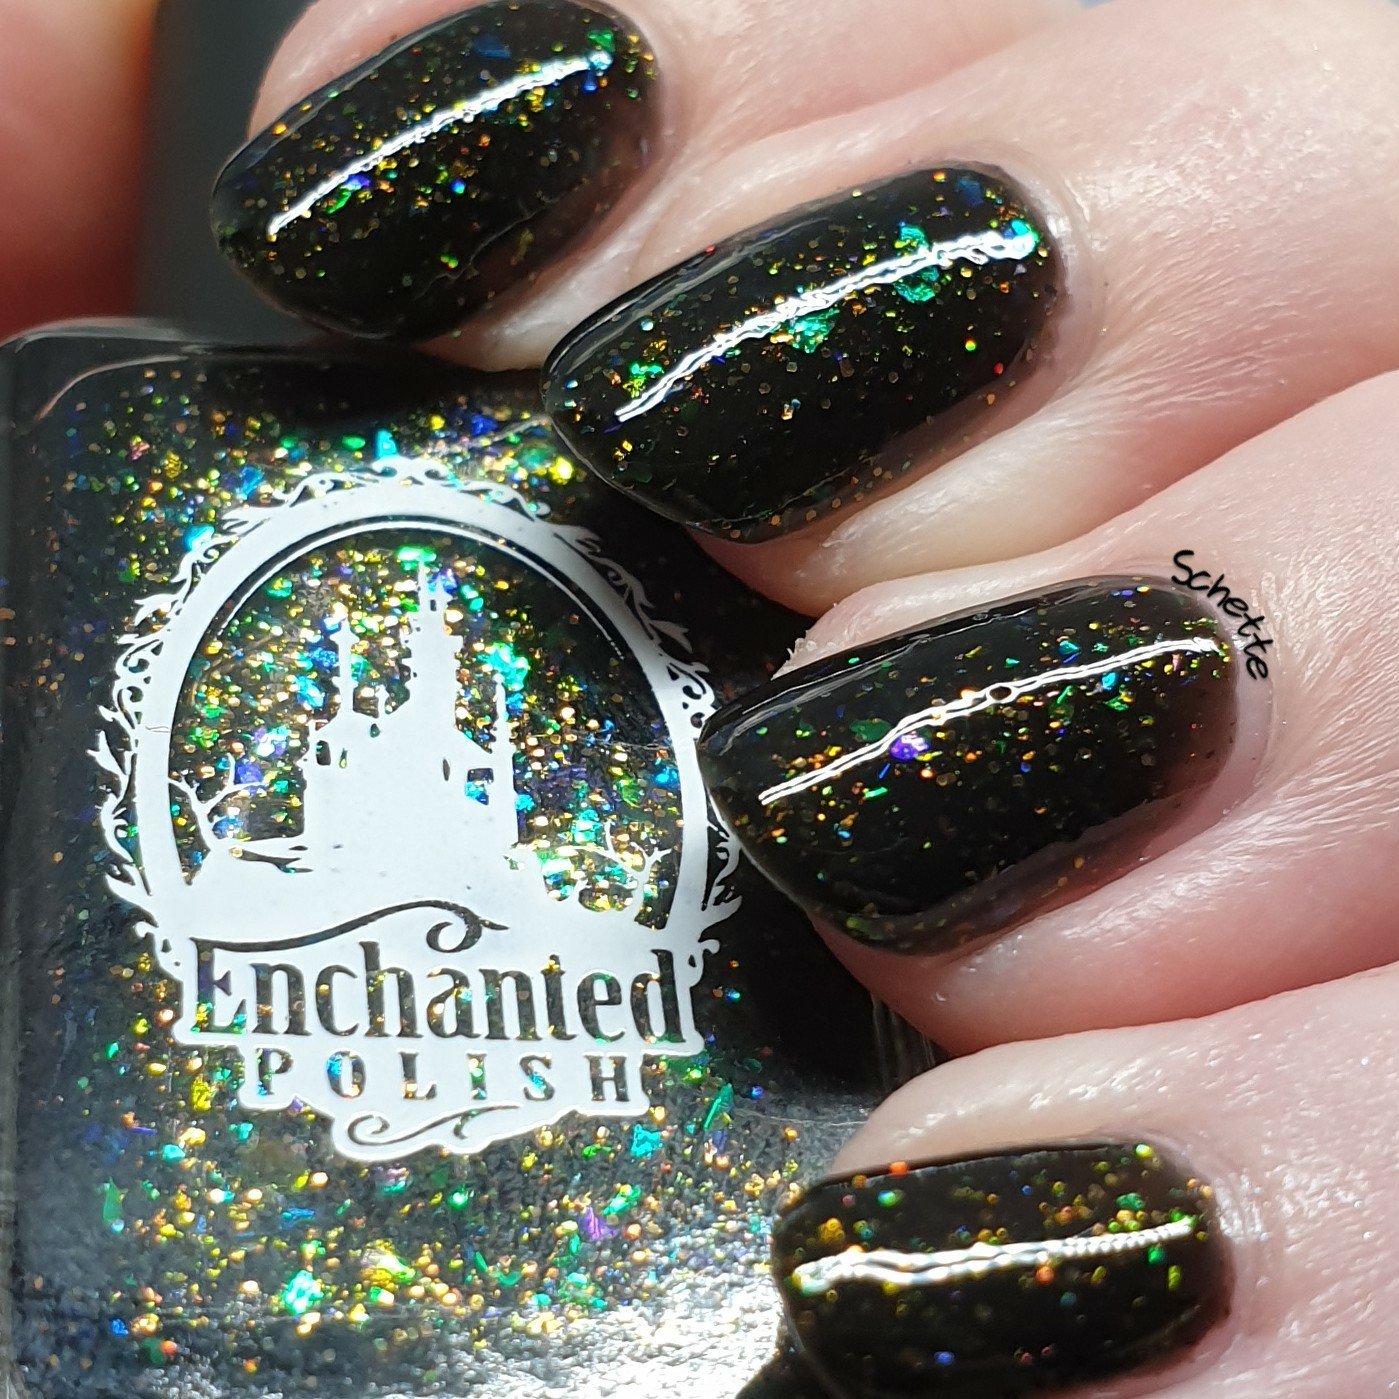 Enchanted Polish - August 2019